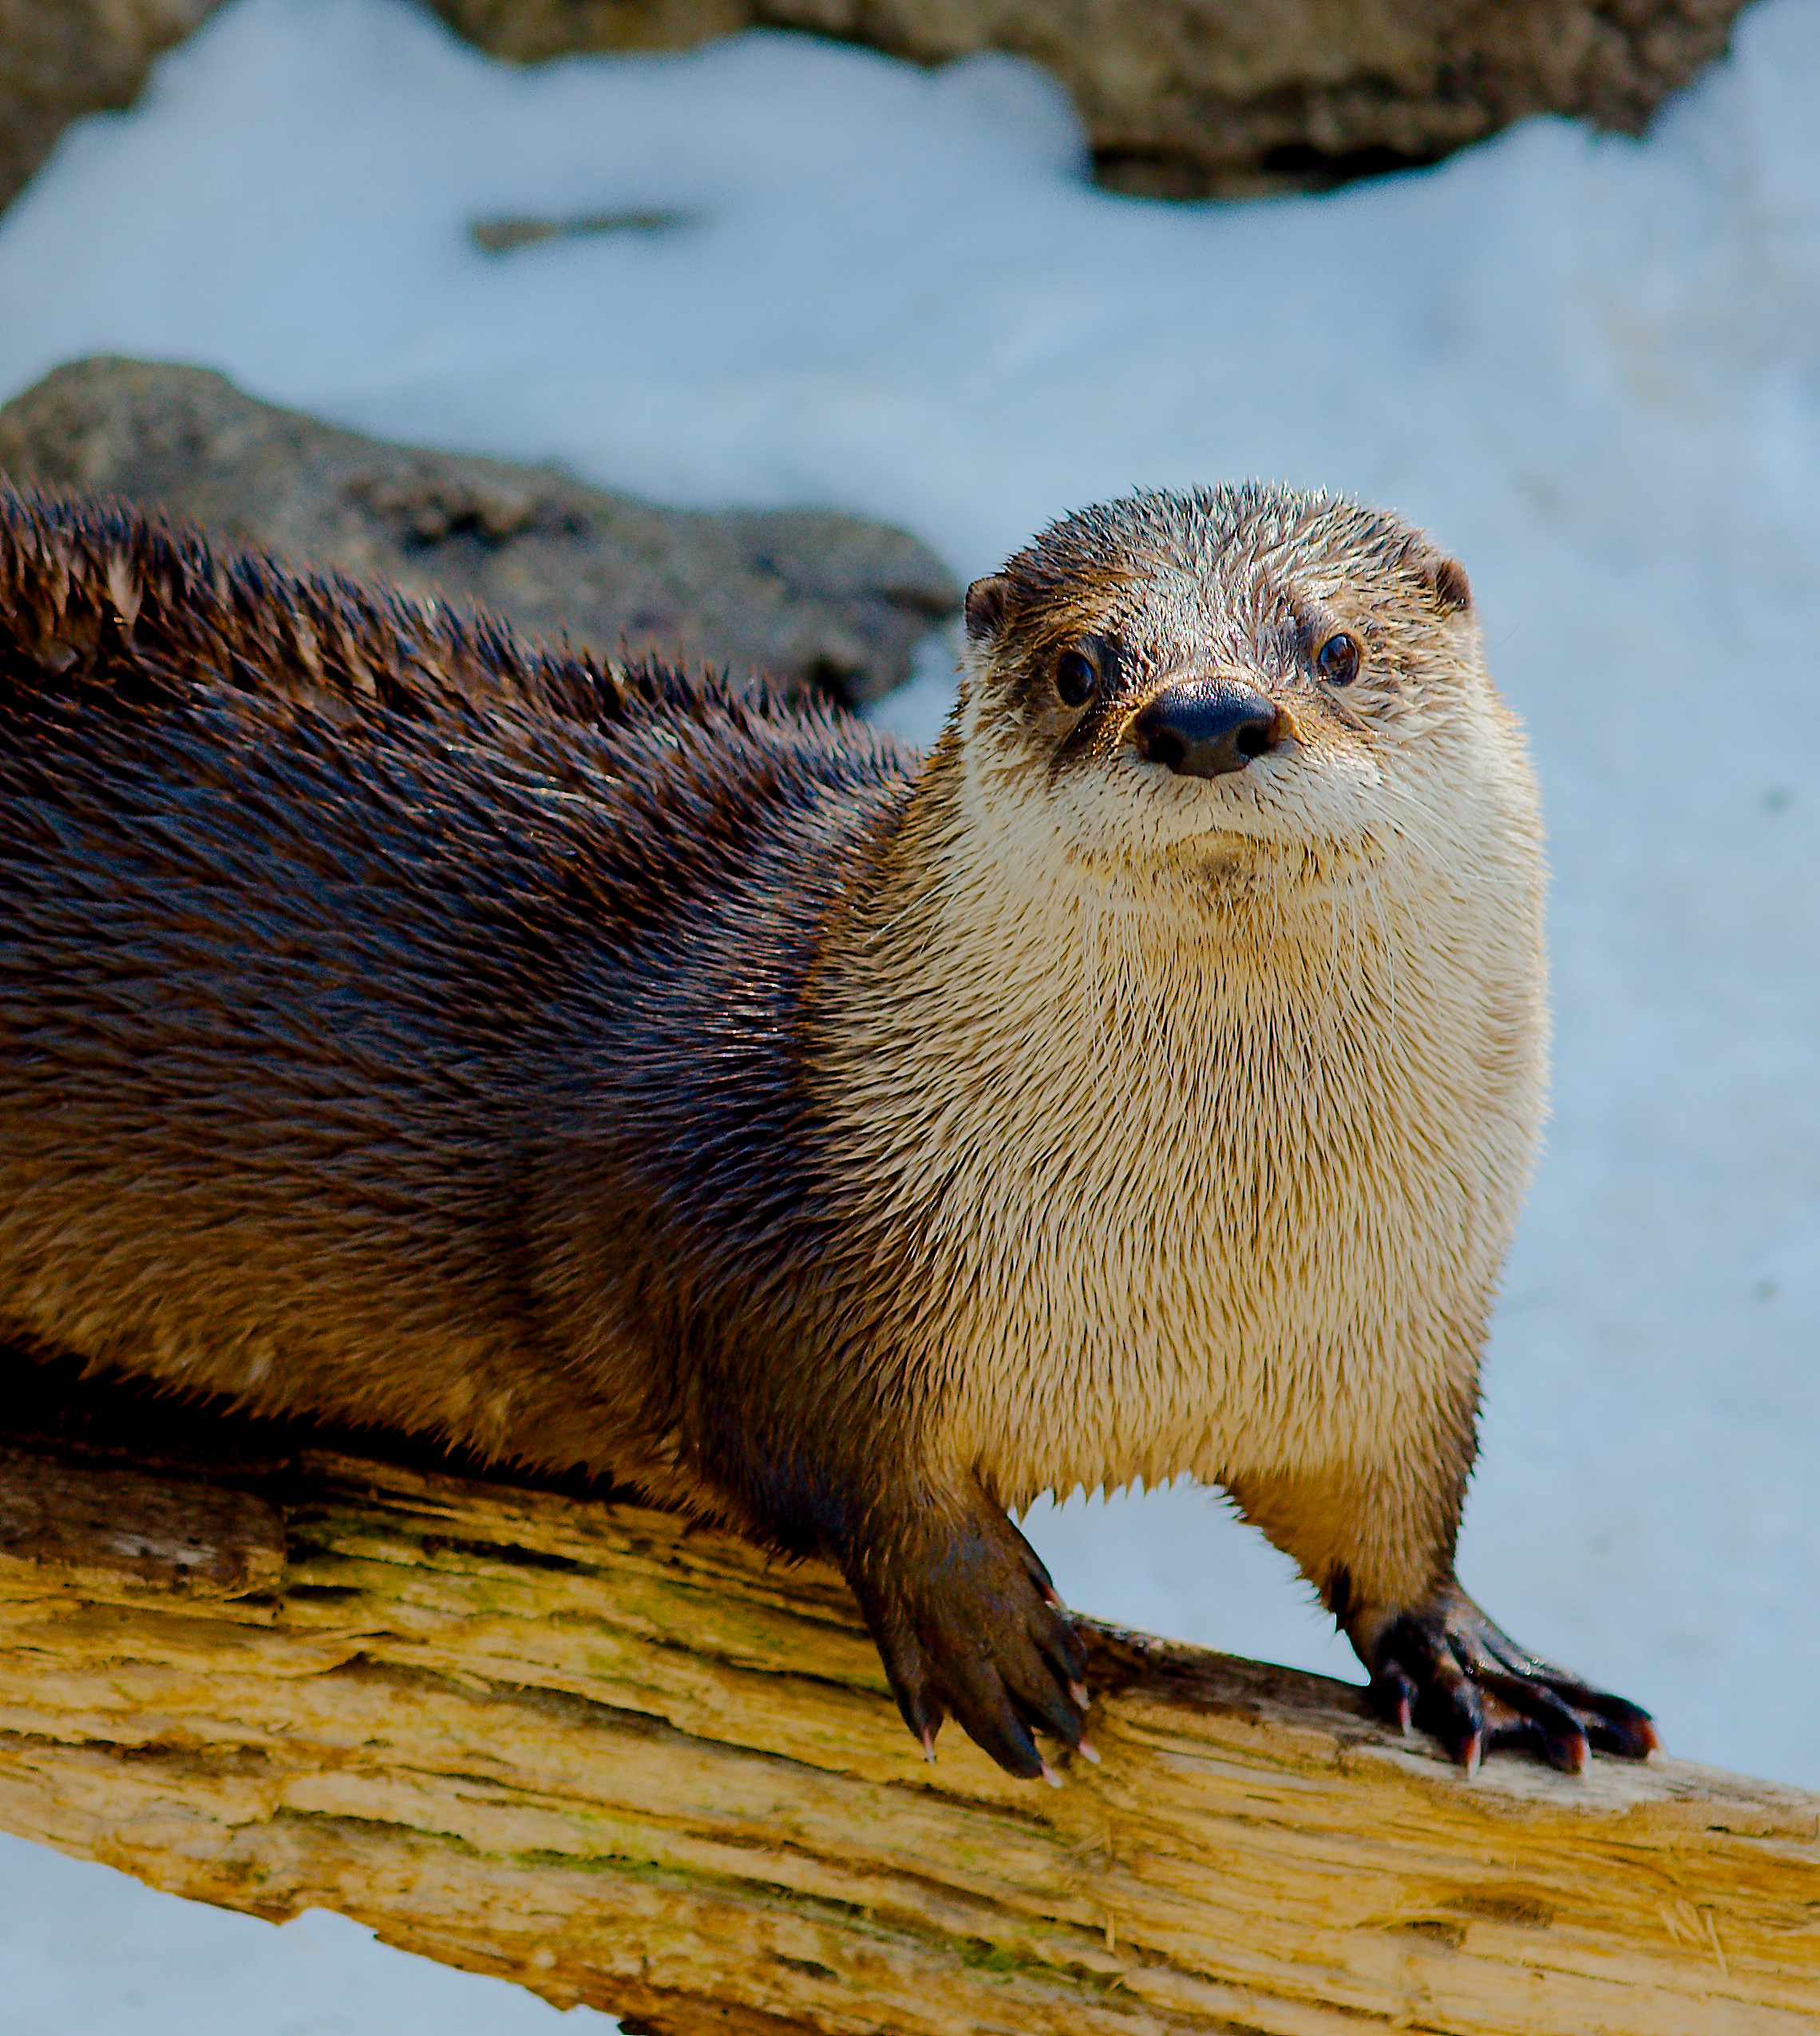 Otter Poses for Her Portrait While Balancing on a Log